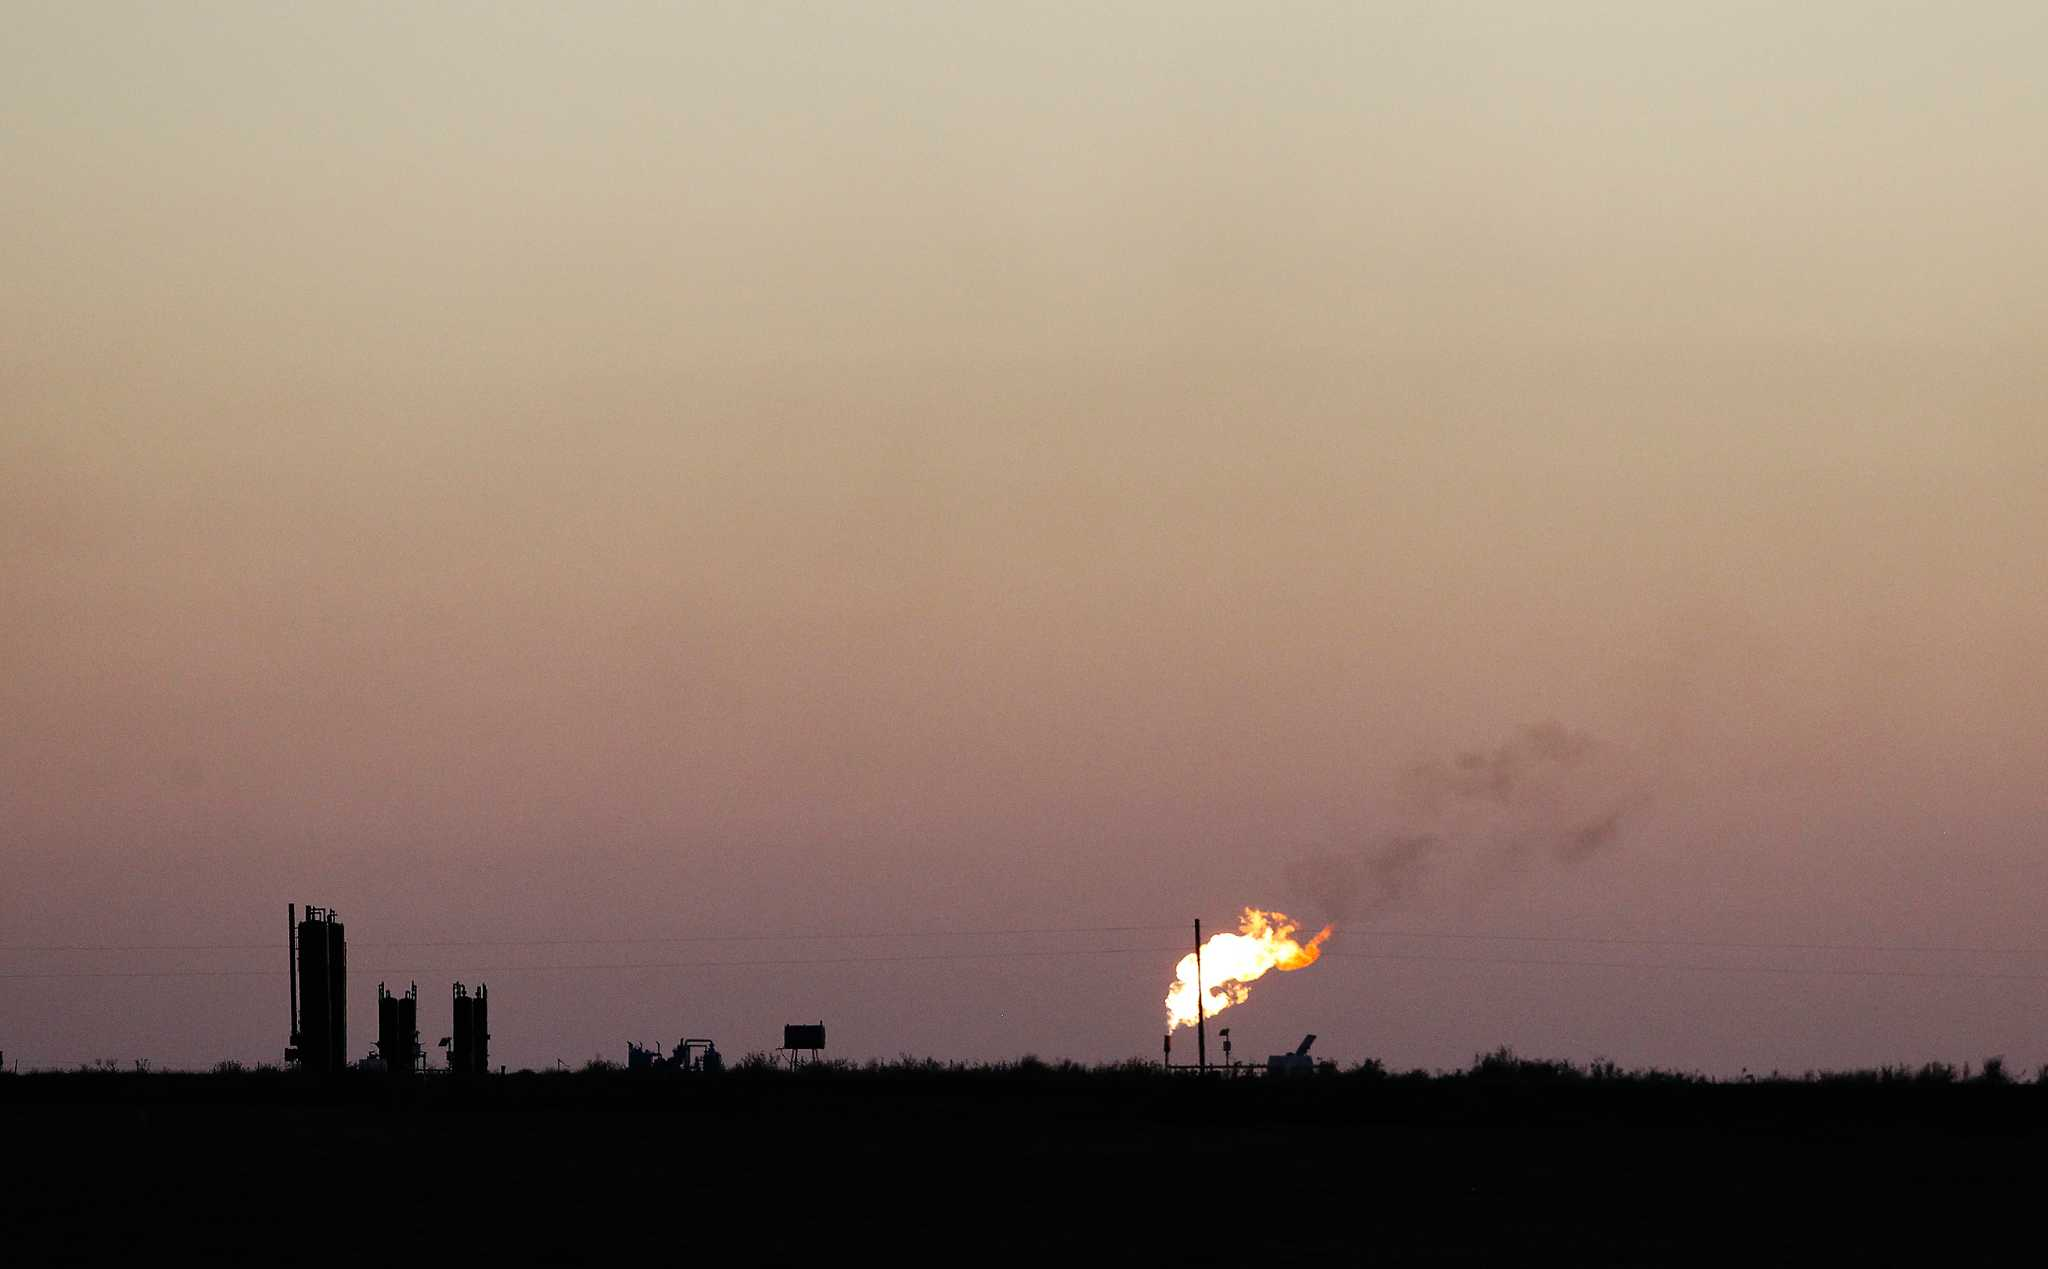 San Antonio Gas Prices >> Up in Flames, Day 1: Flares in Eagle Ford Shale wasting ...